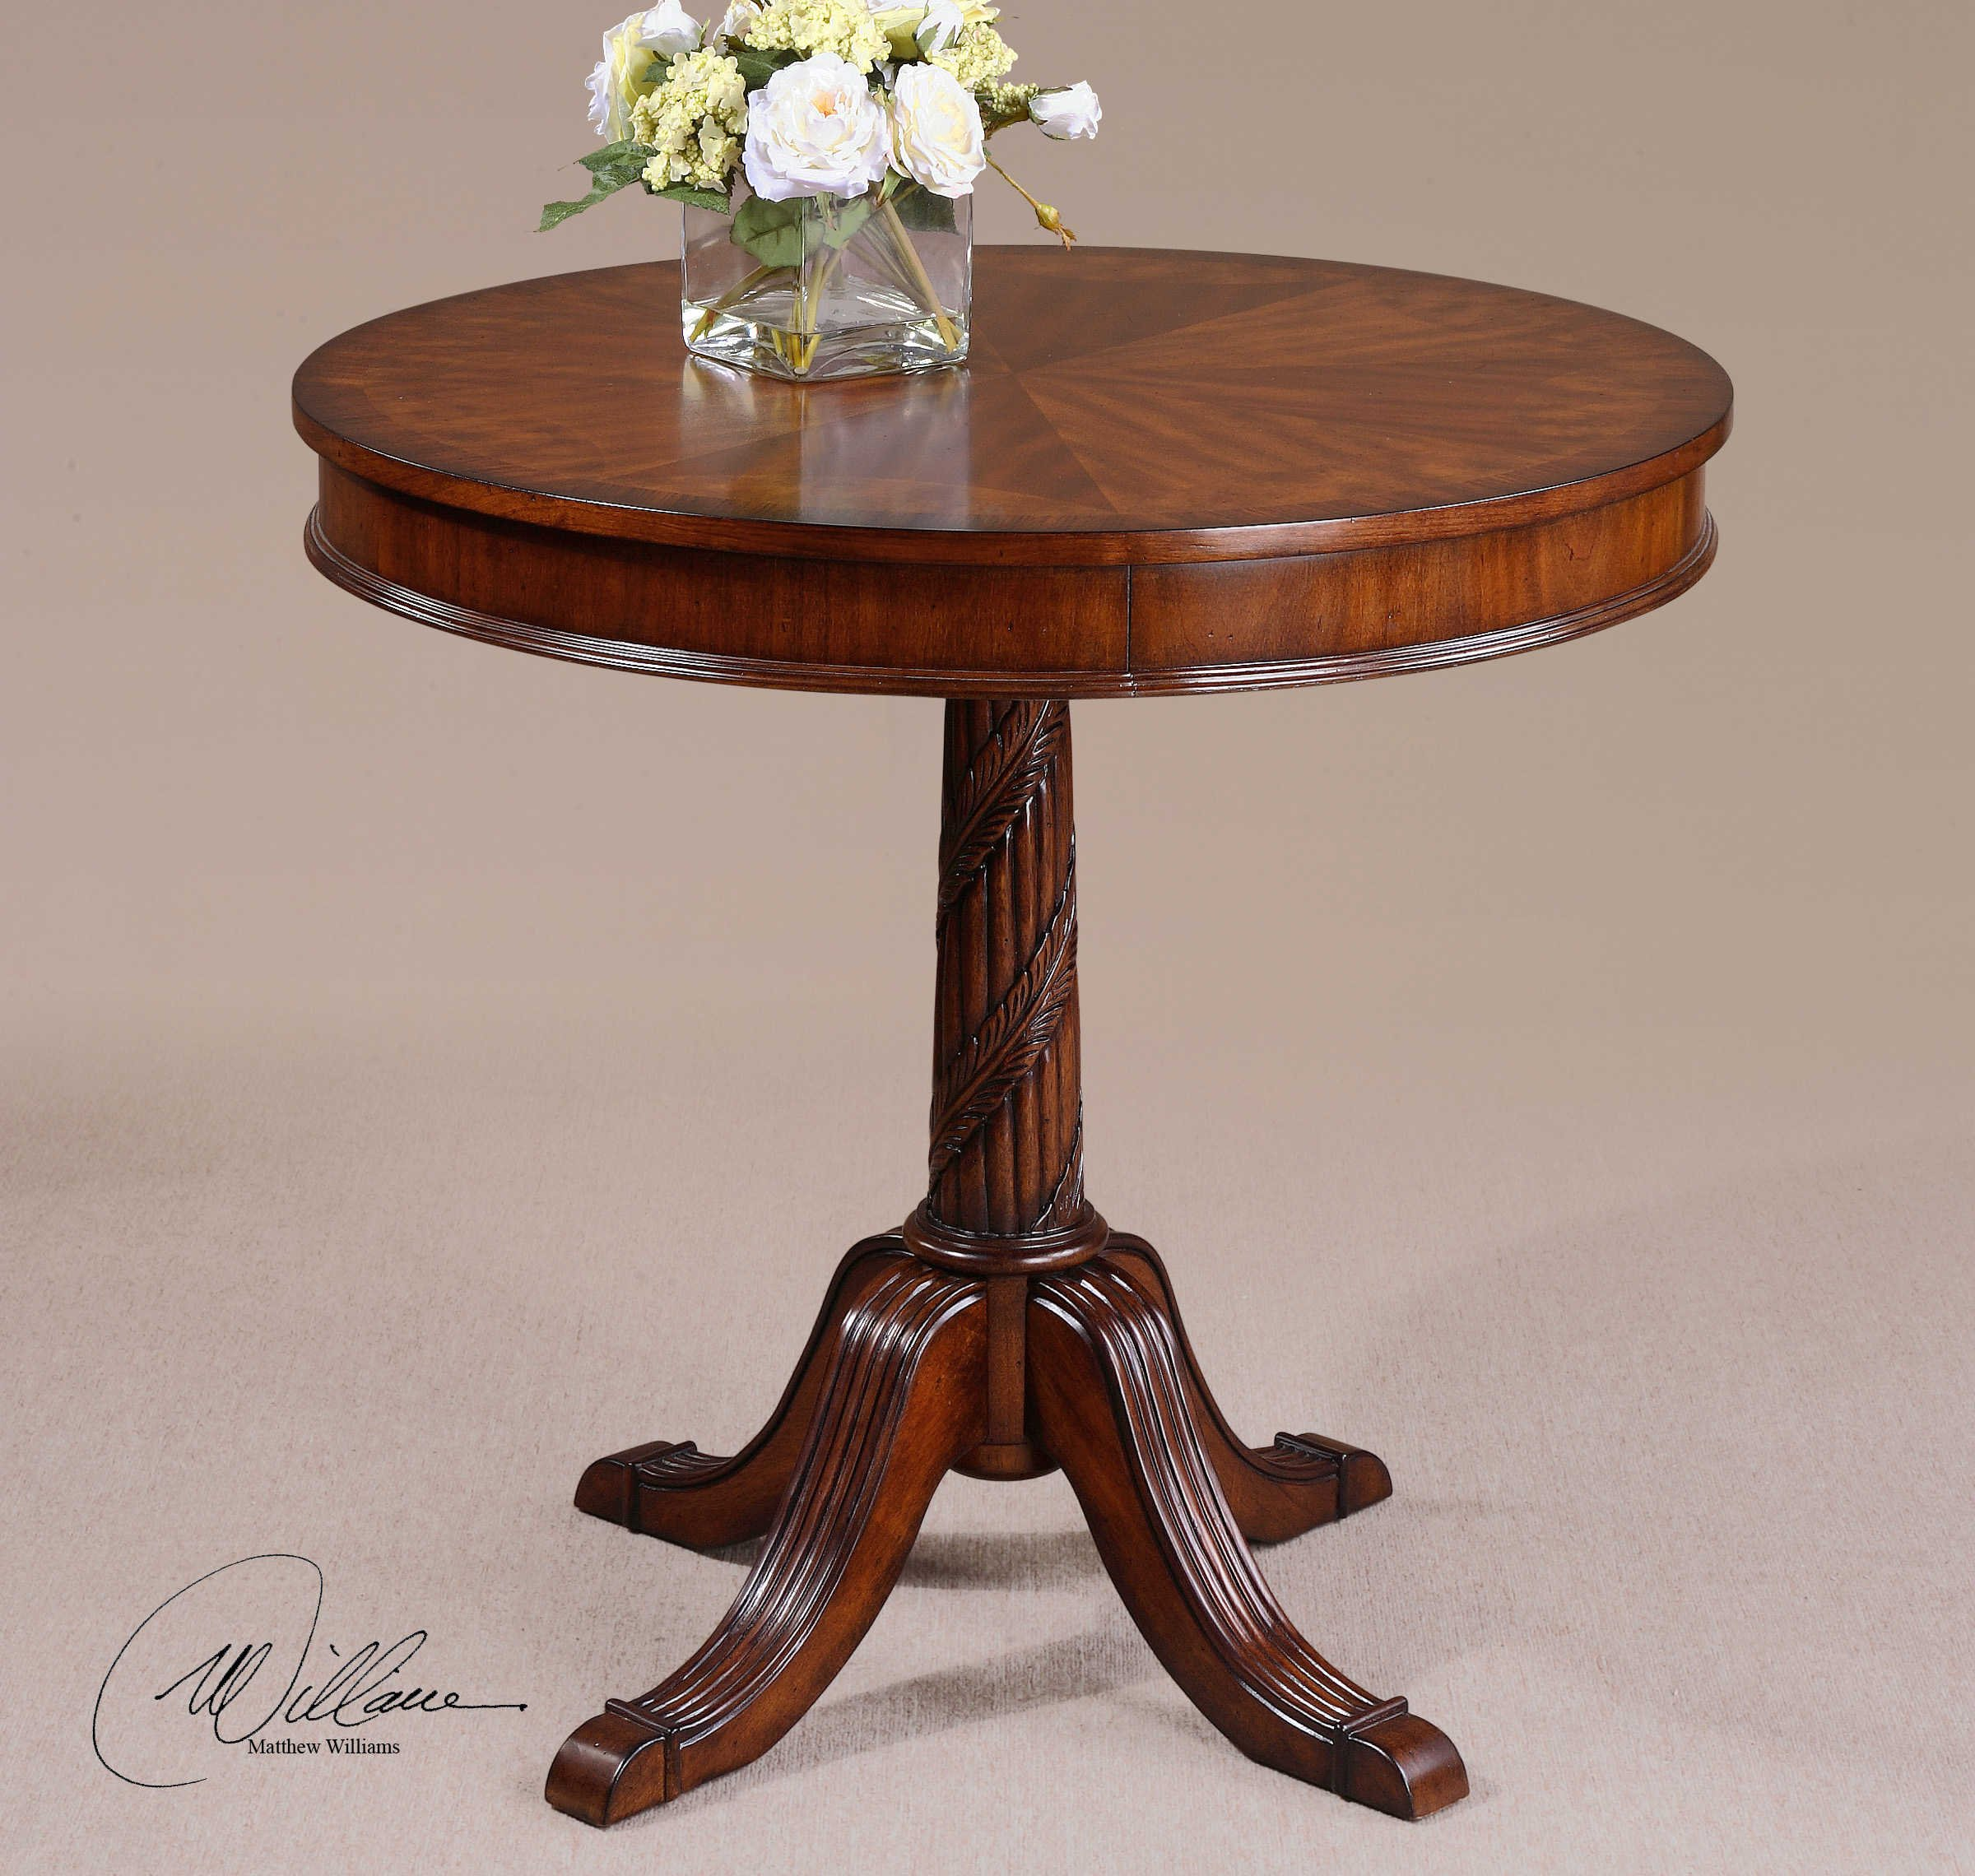 Vhomes Lights Pecan Round Table The Brakefield Collection Sofa-Tables by Vhomes Lights